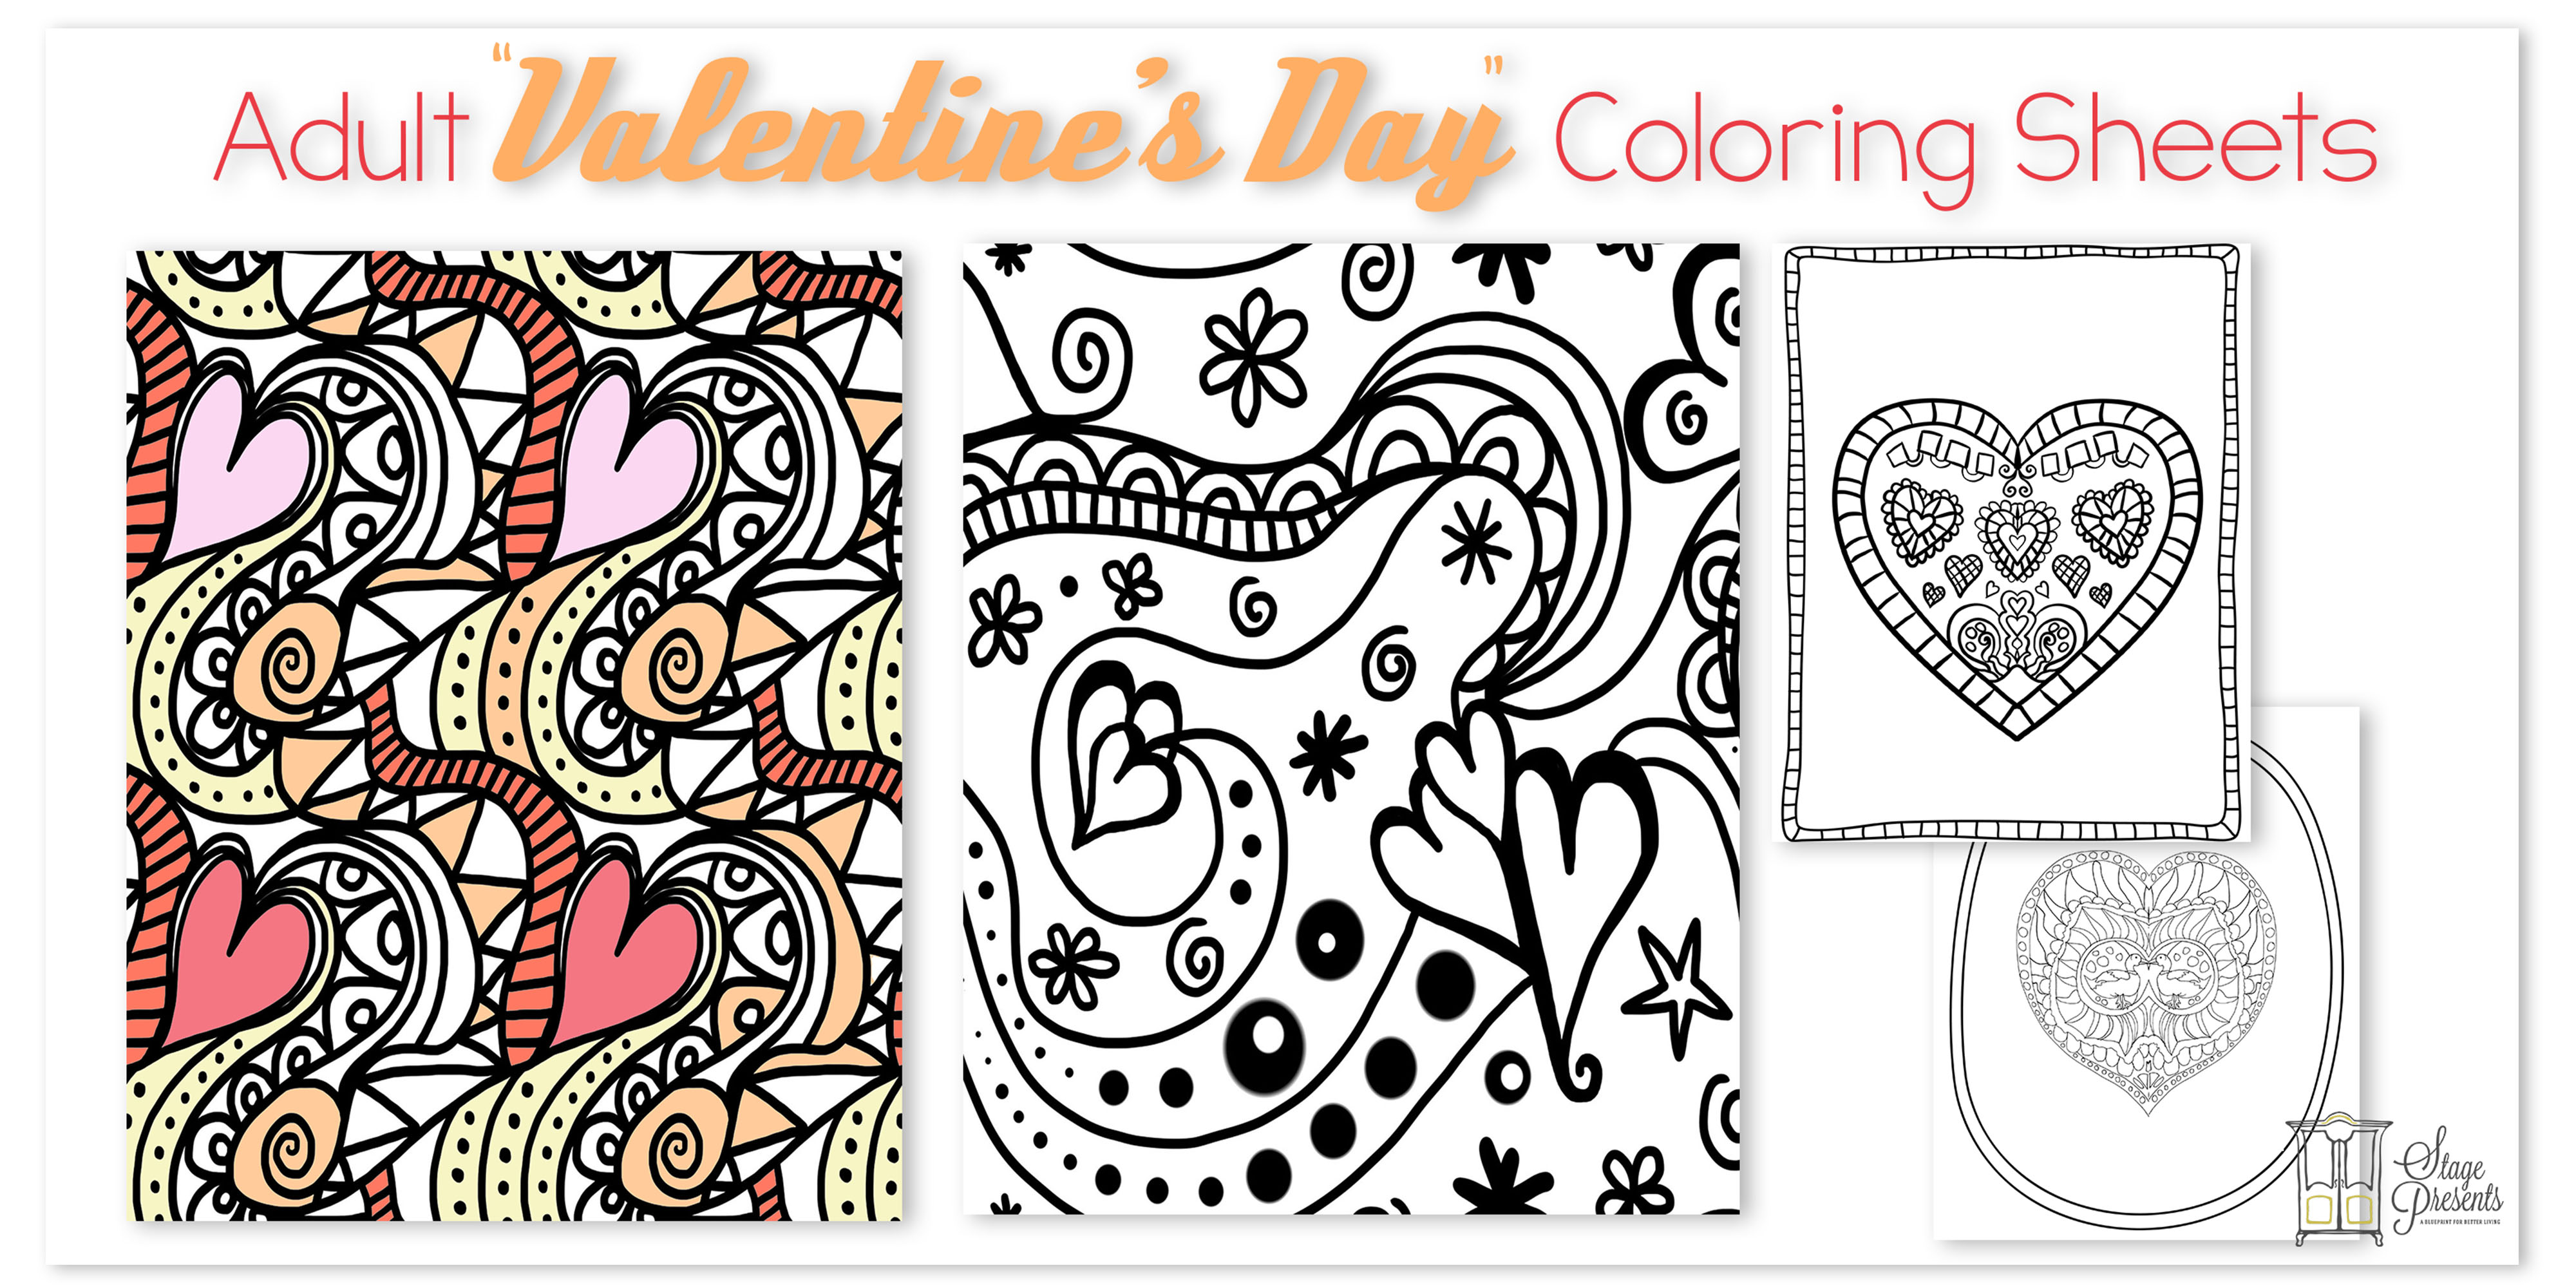 Adult Valentines Day Coloring Sheets Hero Image